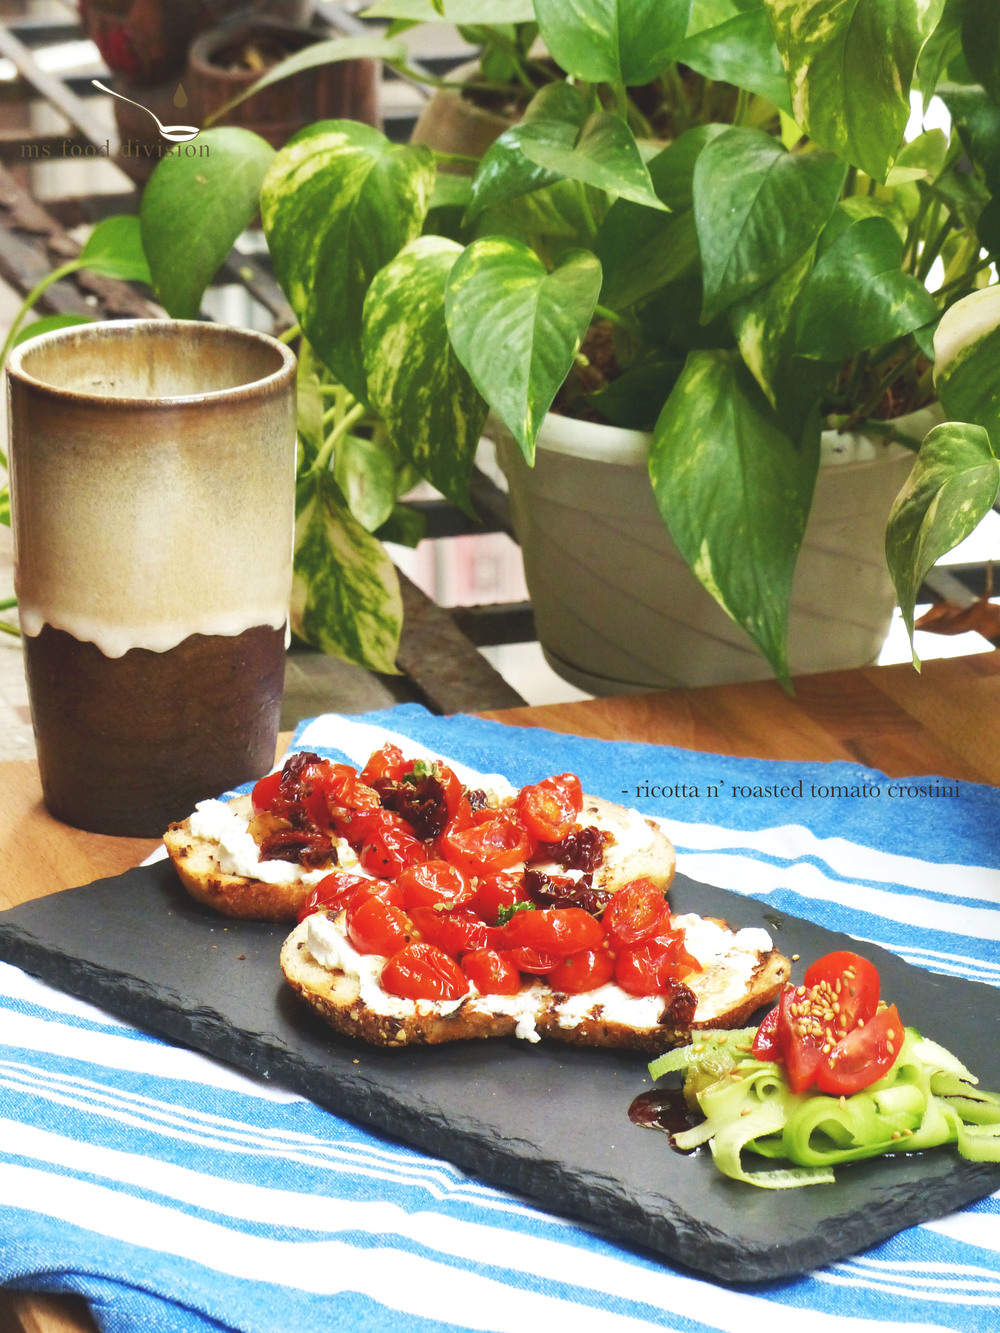 Ingredients: (for 2 servings)   2 slices grilled/baked thin baguette *  100g cherry tomatoes, halved  2-3 tbsp ricotta  1-2 tbsp honey  2 pieces sun-dried tomatoes, thinly sliced  1 garlic, finely chopped  extra-virgin olive oil  1 tsp dried oregano   Instructions:    1) Preheat oven at 180ºC    2) Place the halved cherry tomatoes with oil, season, bake for 10-15 minutes    3) Preheat a stir fry pan with olive oil, add garlic and sun dried tomato under medium low heat; stir and let cook for 3-5 minutes until the sun-dried tomatoes look a little crispy. Turn off the fire.     4) Transfer the sun-dried tomatoes to the baking dish of cherry tomatoes and bake for around 5 minutes.     5) Spread the ricotta cheese generously on the grilled baguette surface. Add honey on the cheese.     6) Top with the roasted tomatoes and oregano. And ready to serve! :)    * I usually like to use a griddle pan to toast my baguettes (I love those little burnt lines on my bread) but feel free to use an oven if you desire.